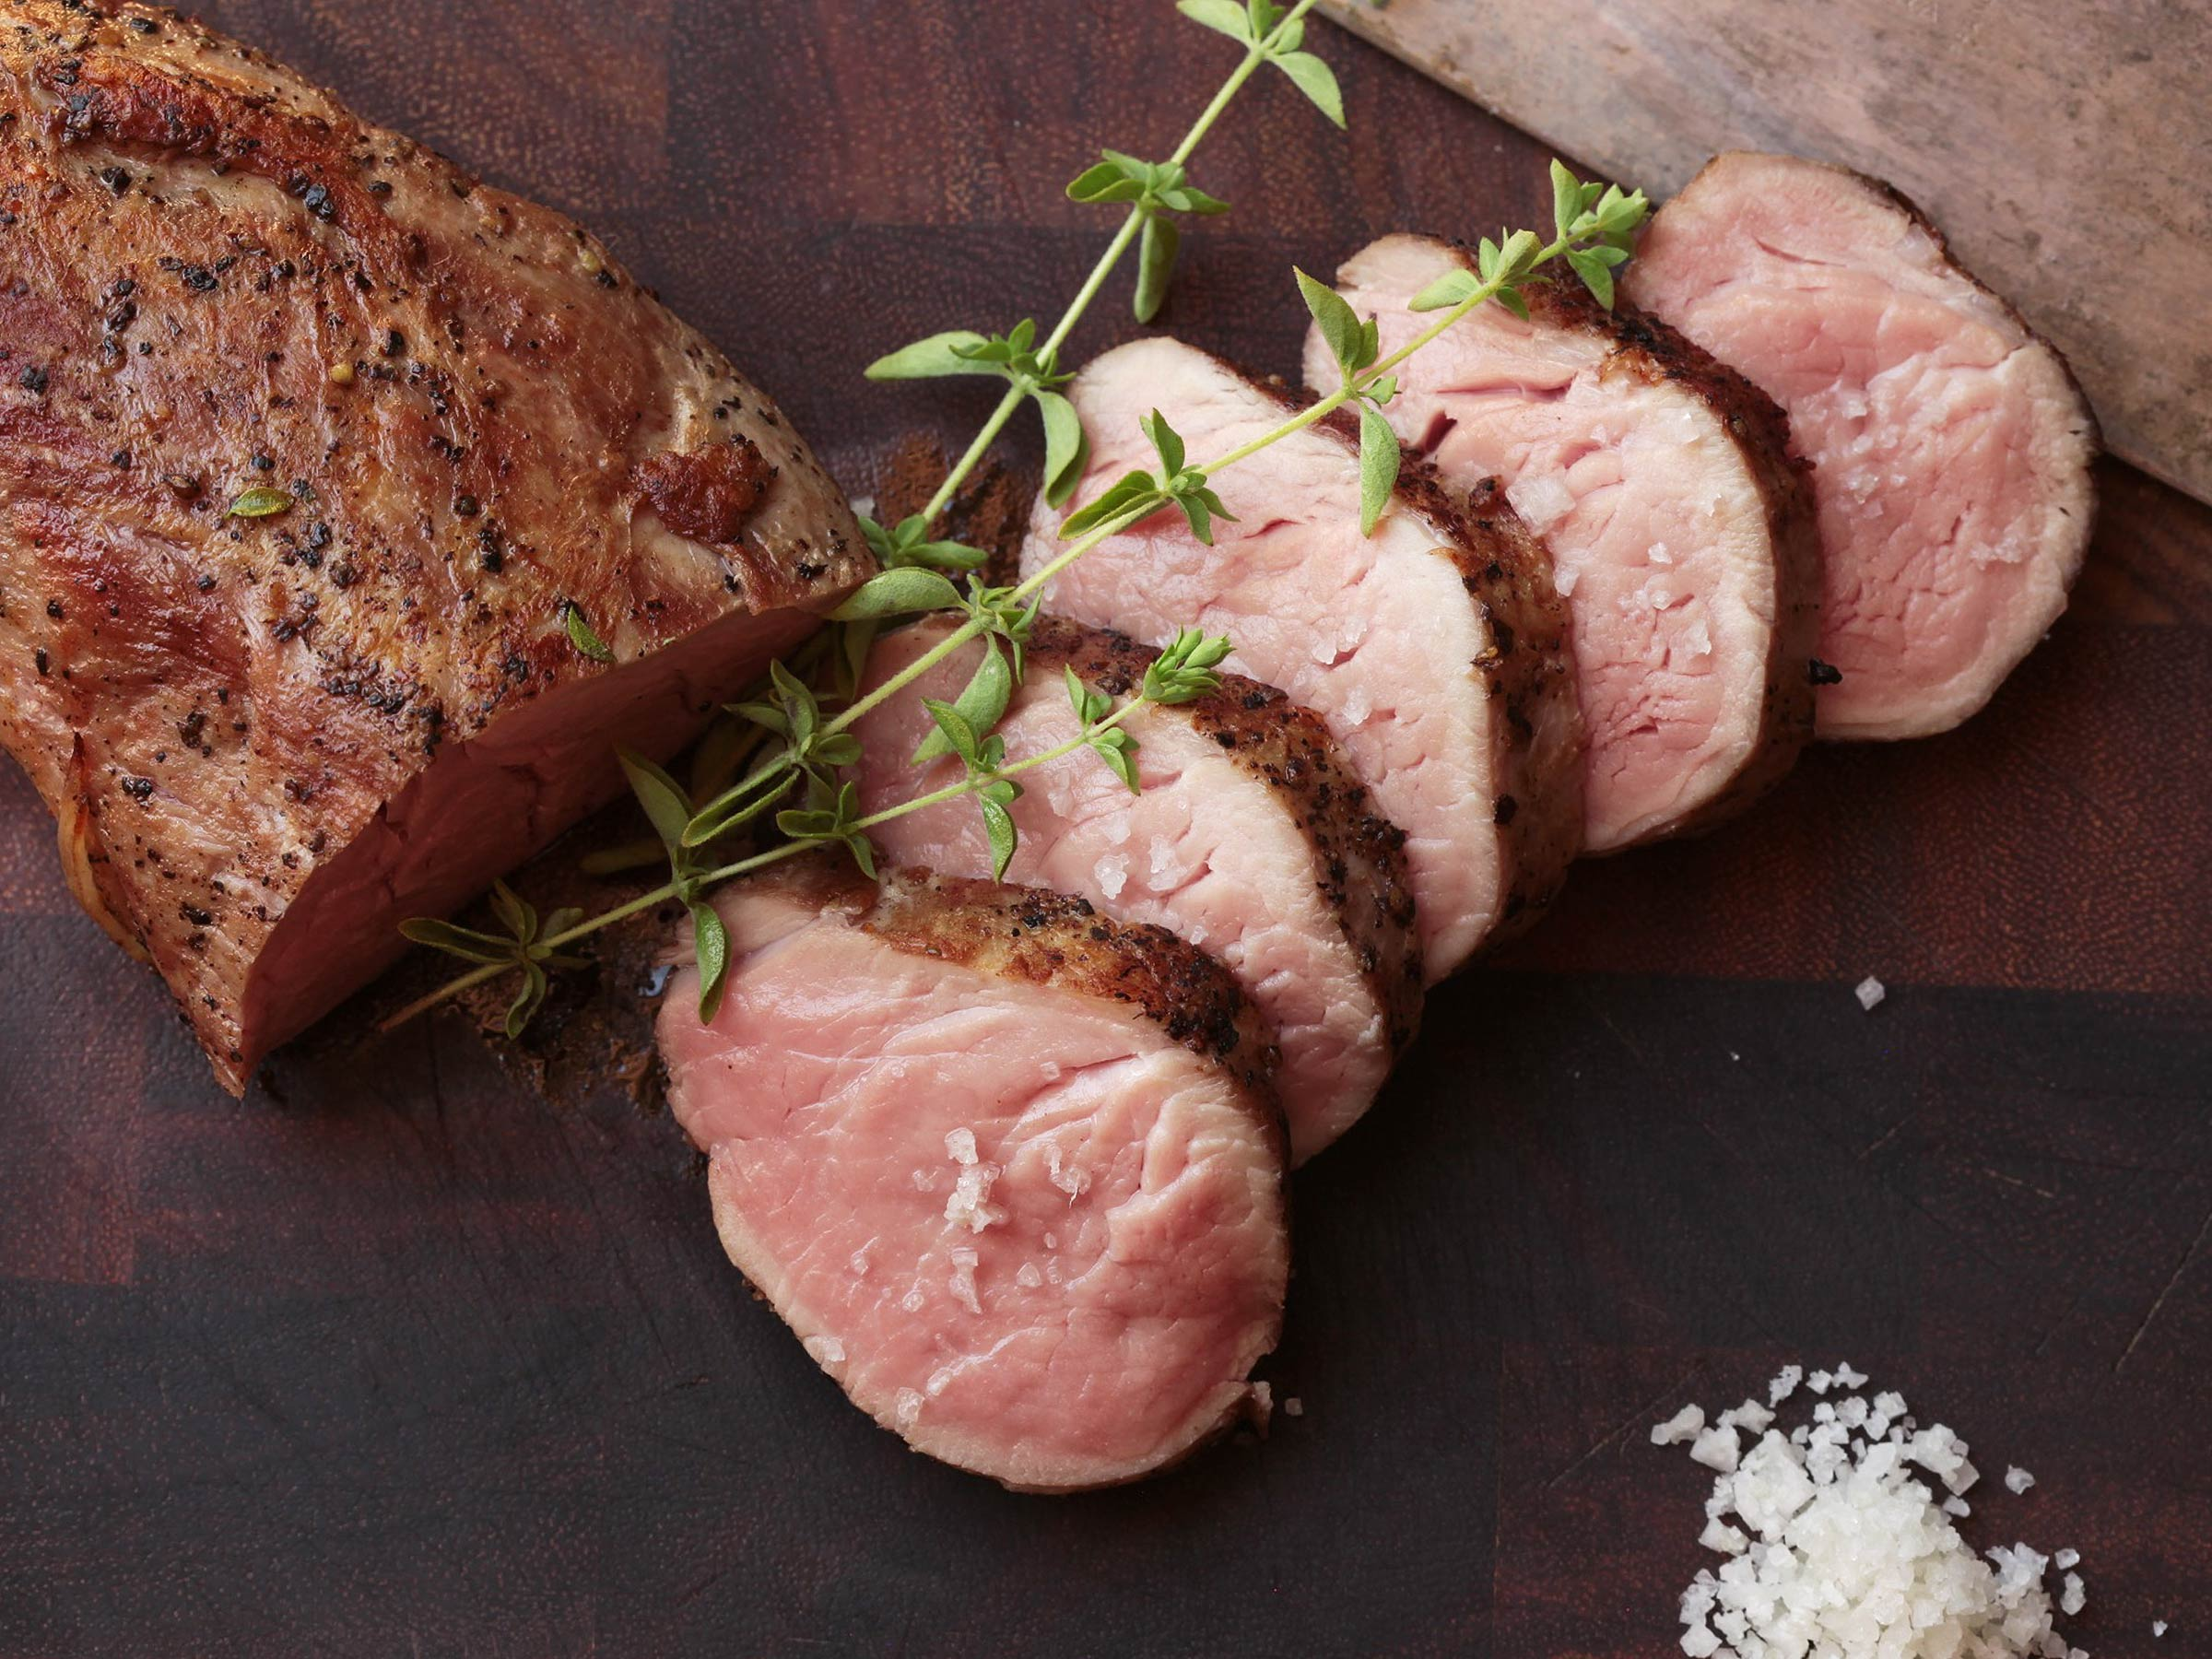 Lambchops Applecider Sauce Couscous Dried Fruit likewise Bratwurst Cabbage together with Simple Pan Fried Pork Chops likewise Festive Lamb Crown Roast With Oven Roasted Vegetables additionally Organic Lamb Rib Chop. on skillet lamb chops